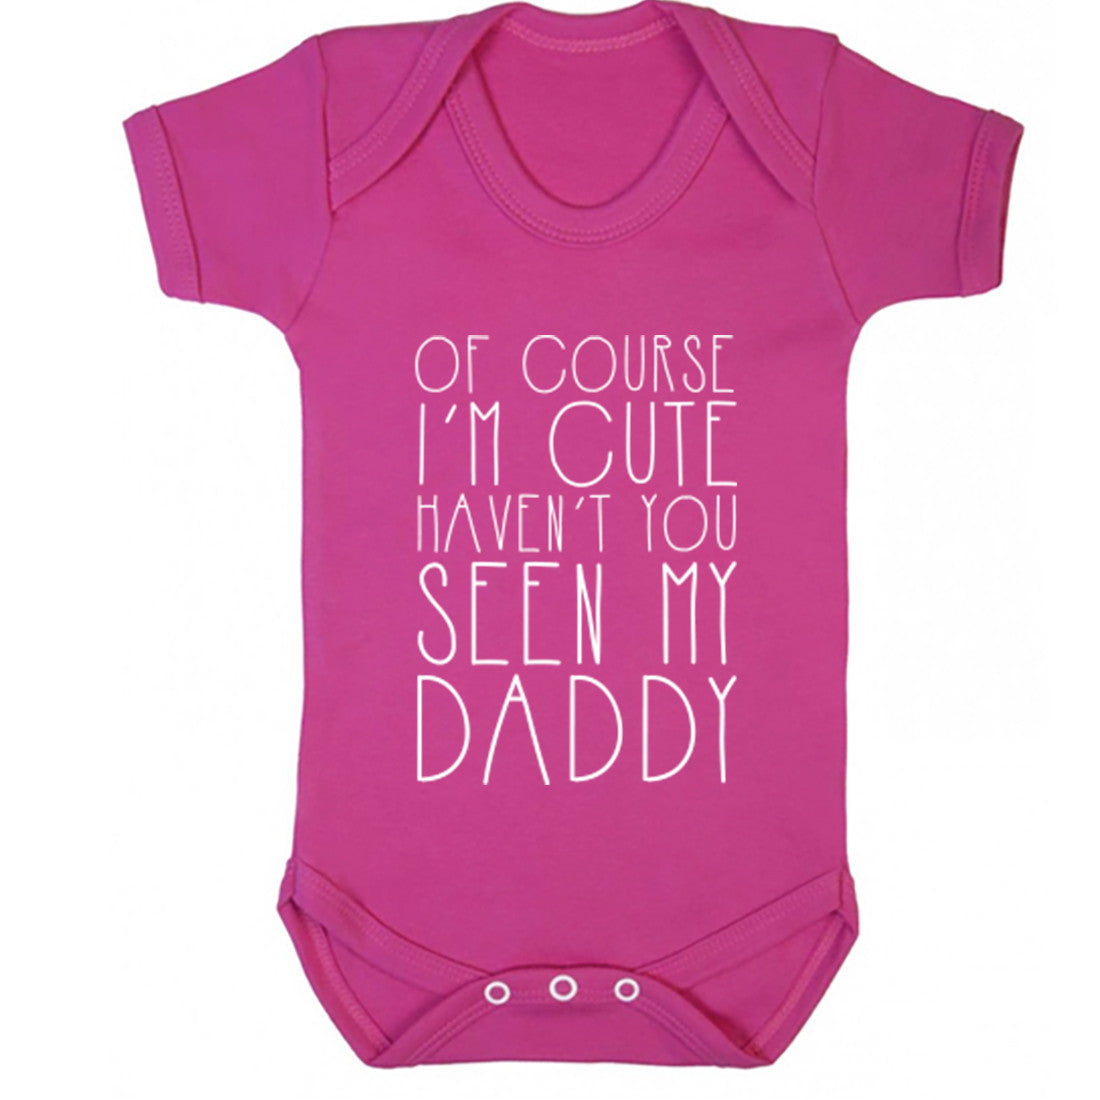 Of Course I'm Cute Haven't You Seen My Daddy Baby Vest K1377 - Illustrated Identity Ltd.